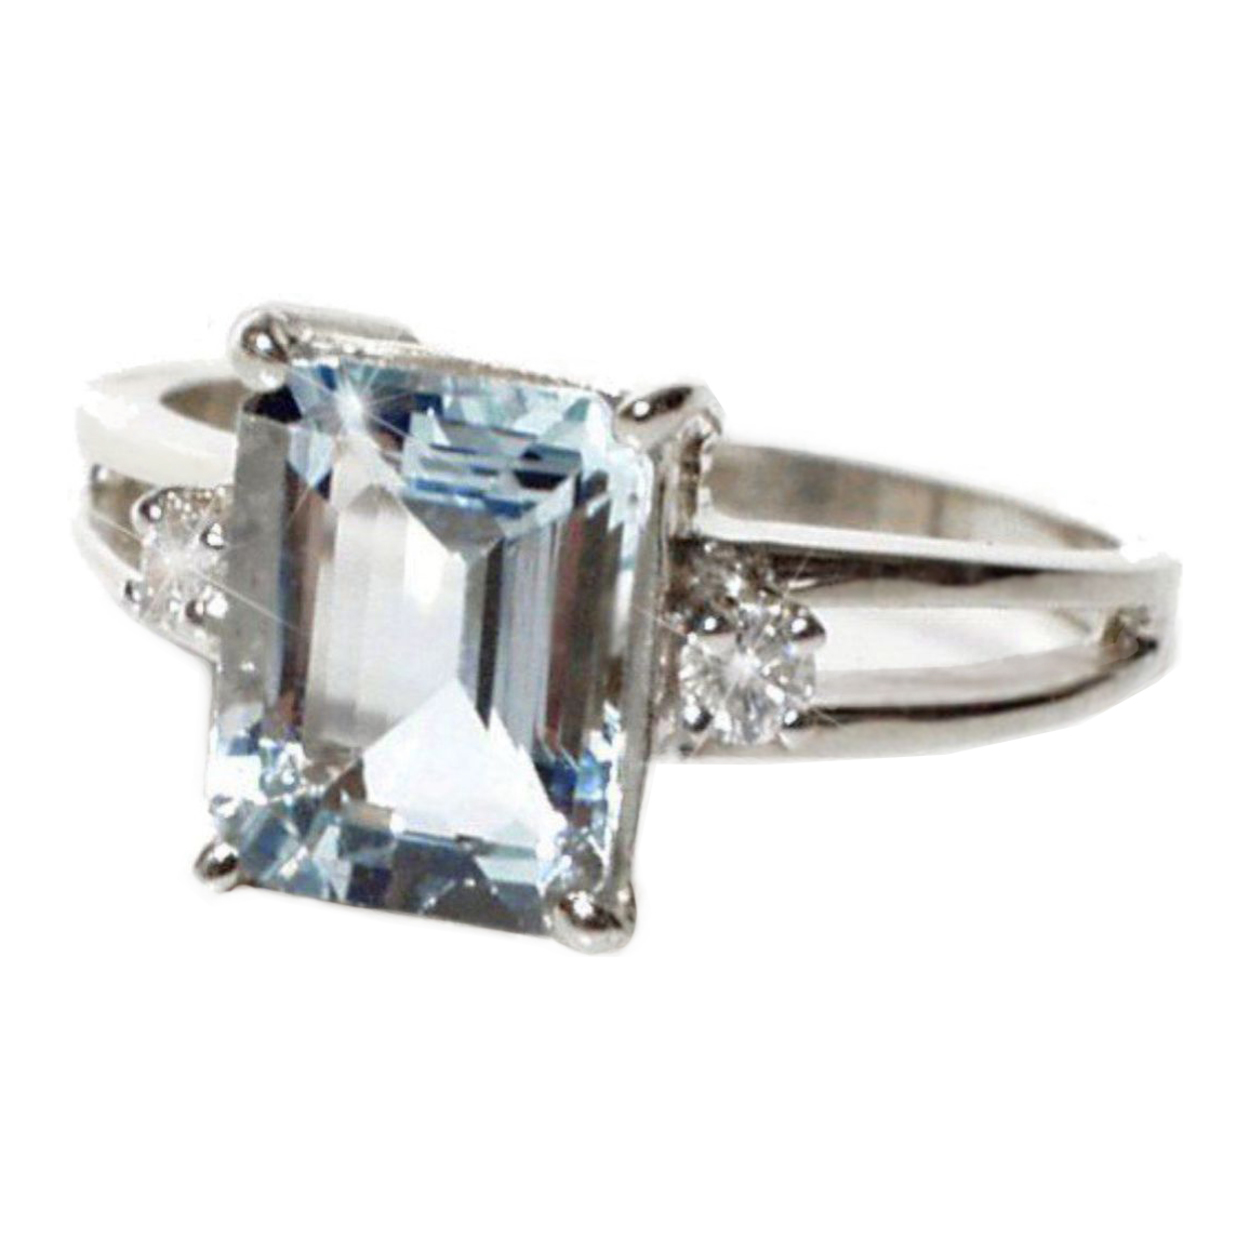 sabrinasilver rings impl inch natural halo engagement wide diamond oval silver aquamarine home sterling ring shopcart